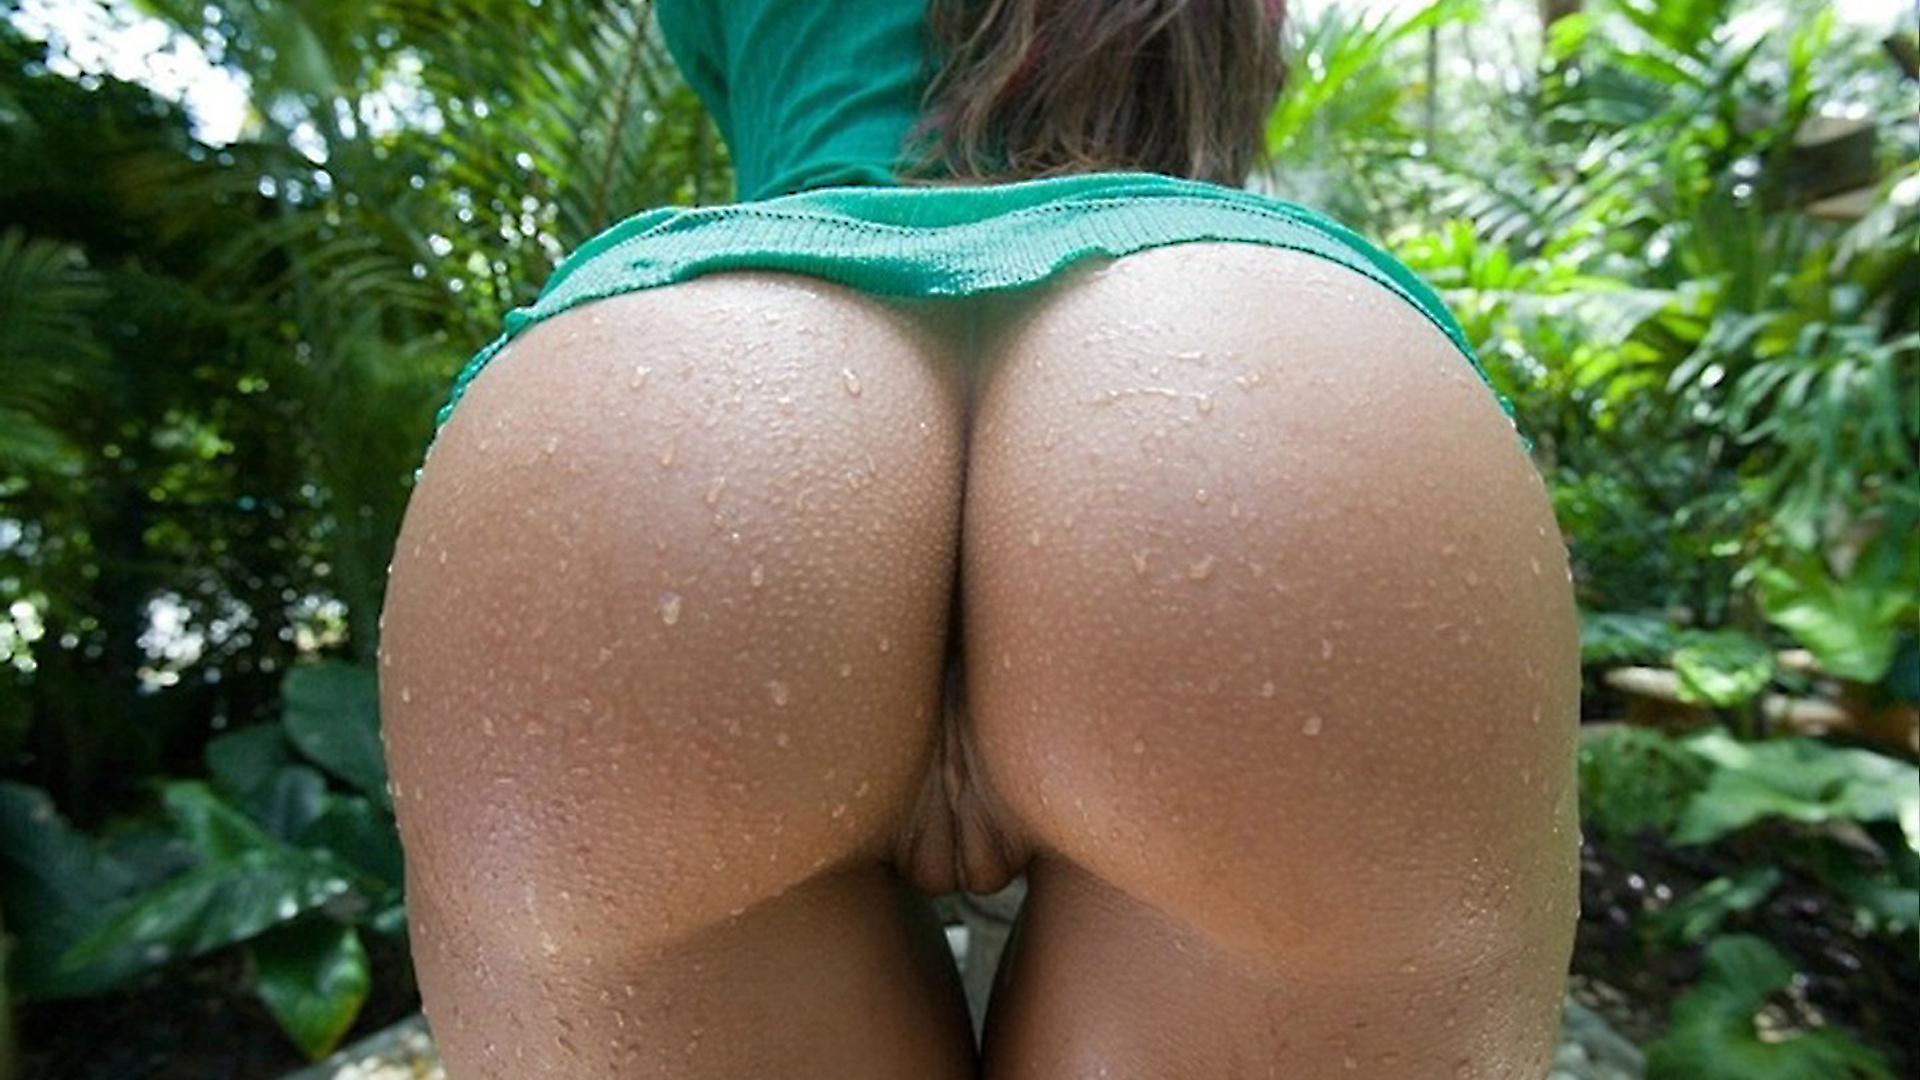 wallpaper butt, ass, pussy, girl, buttocks, wet, ass shot, upskirt